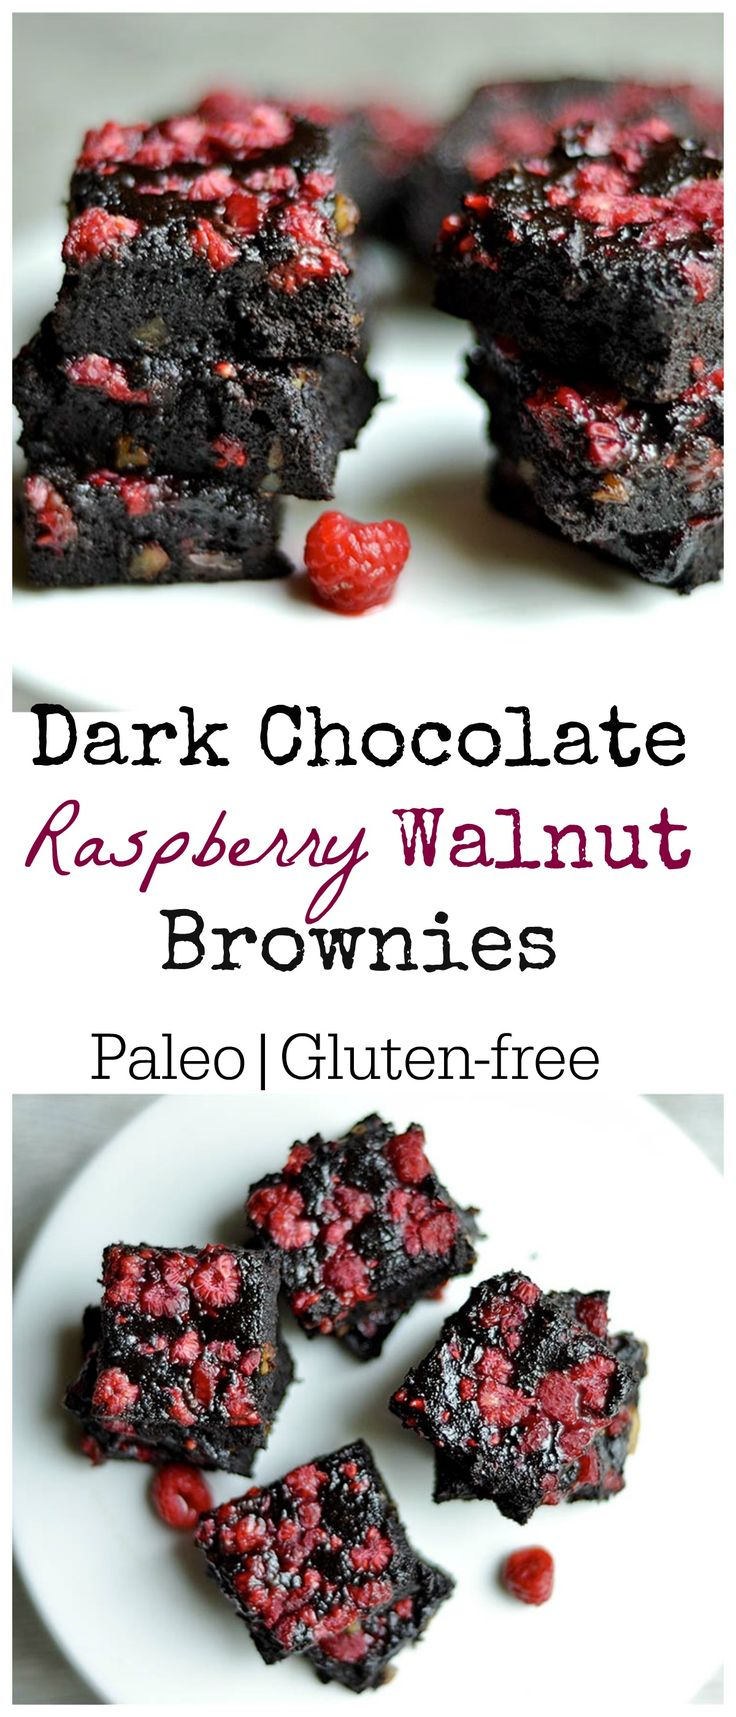 Delicious rich dark chocolate brownies with the perfect hint of raspberries! Refined sugar-free, Paleo, and GF.